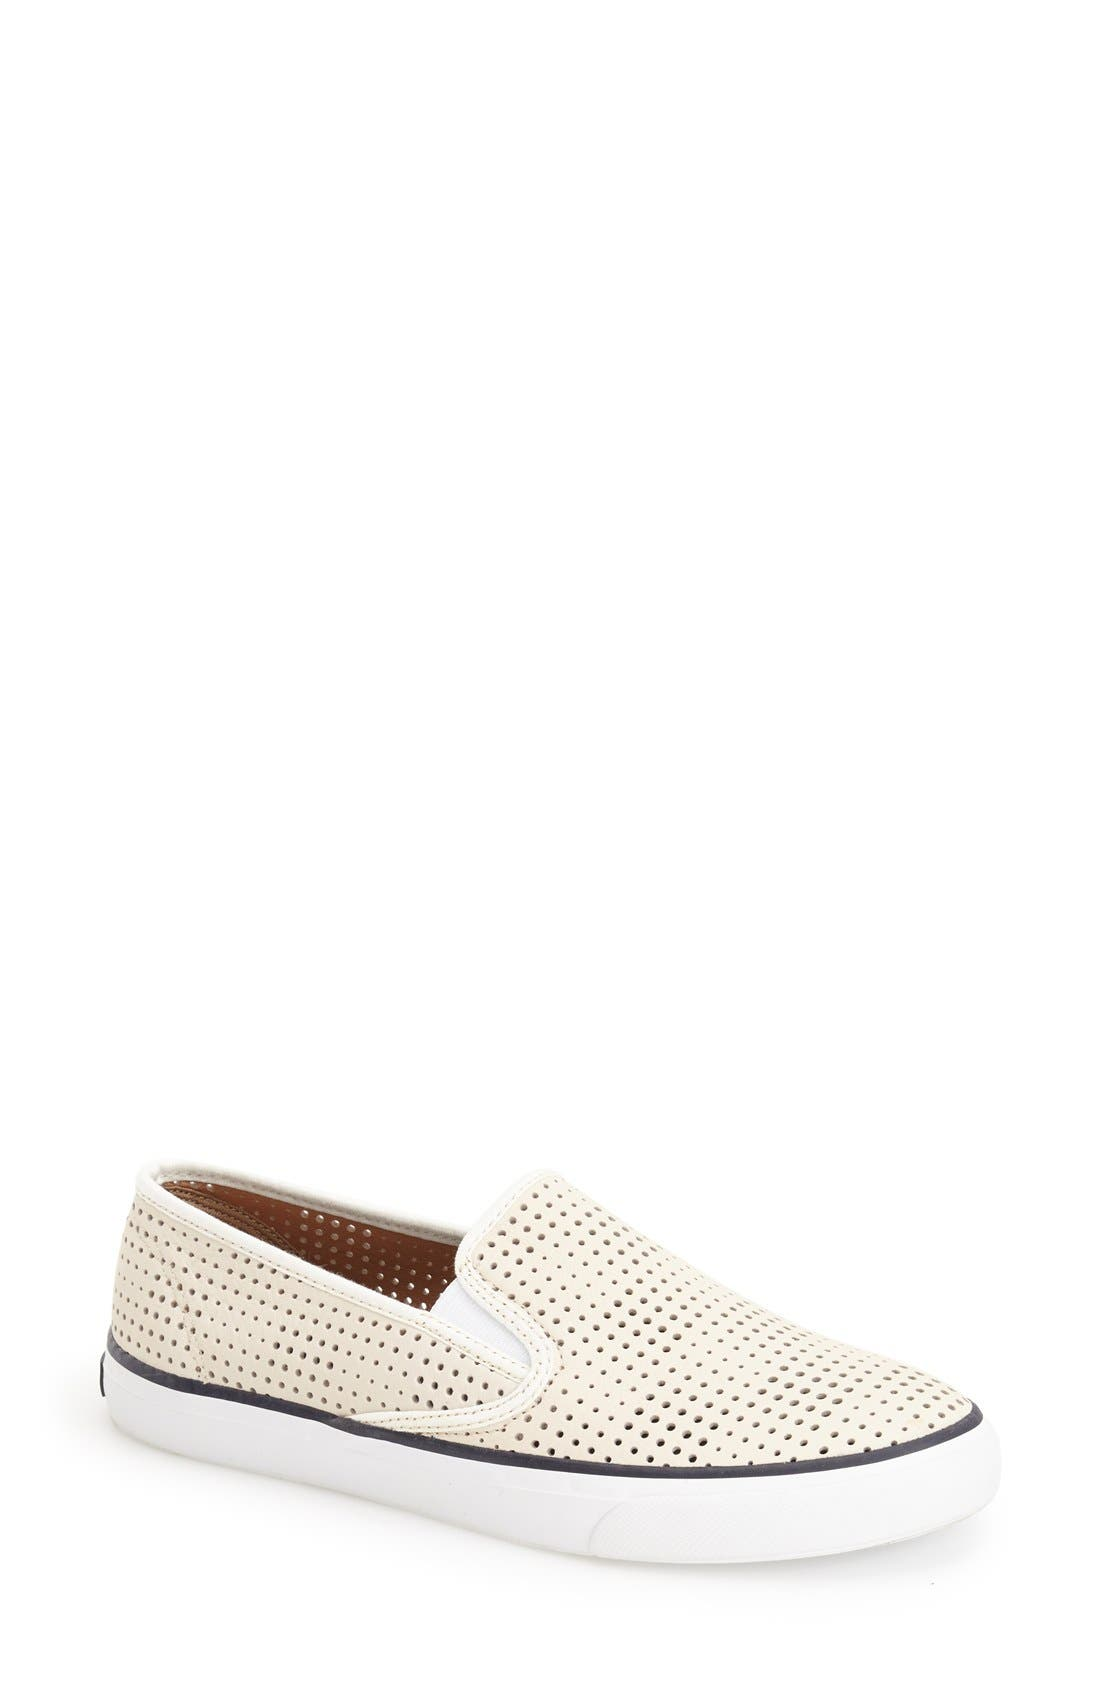 'Seaside' Perforated Slip-On Sneaker,                             Main thumbnail 6, color,